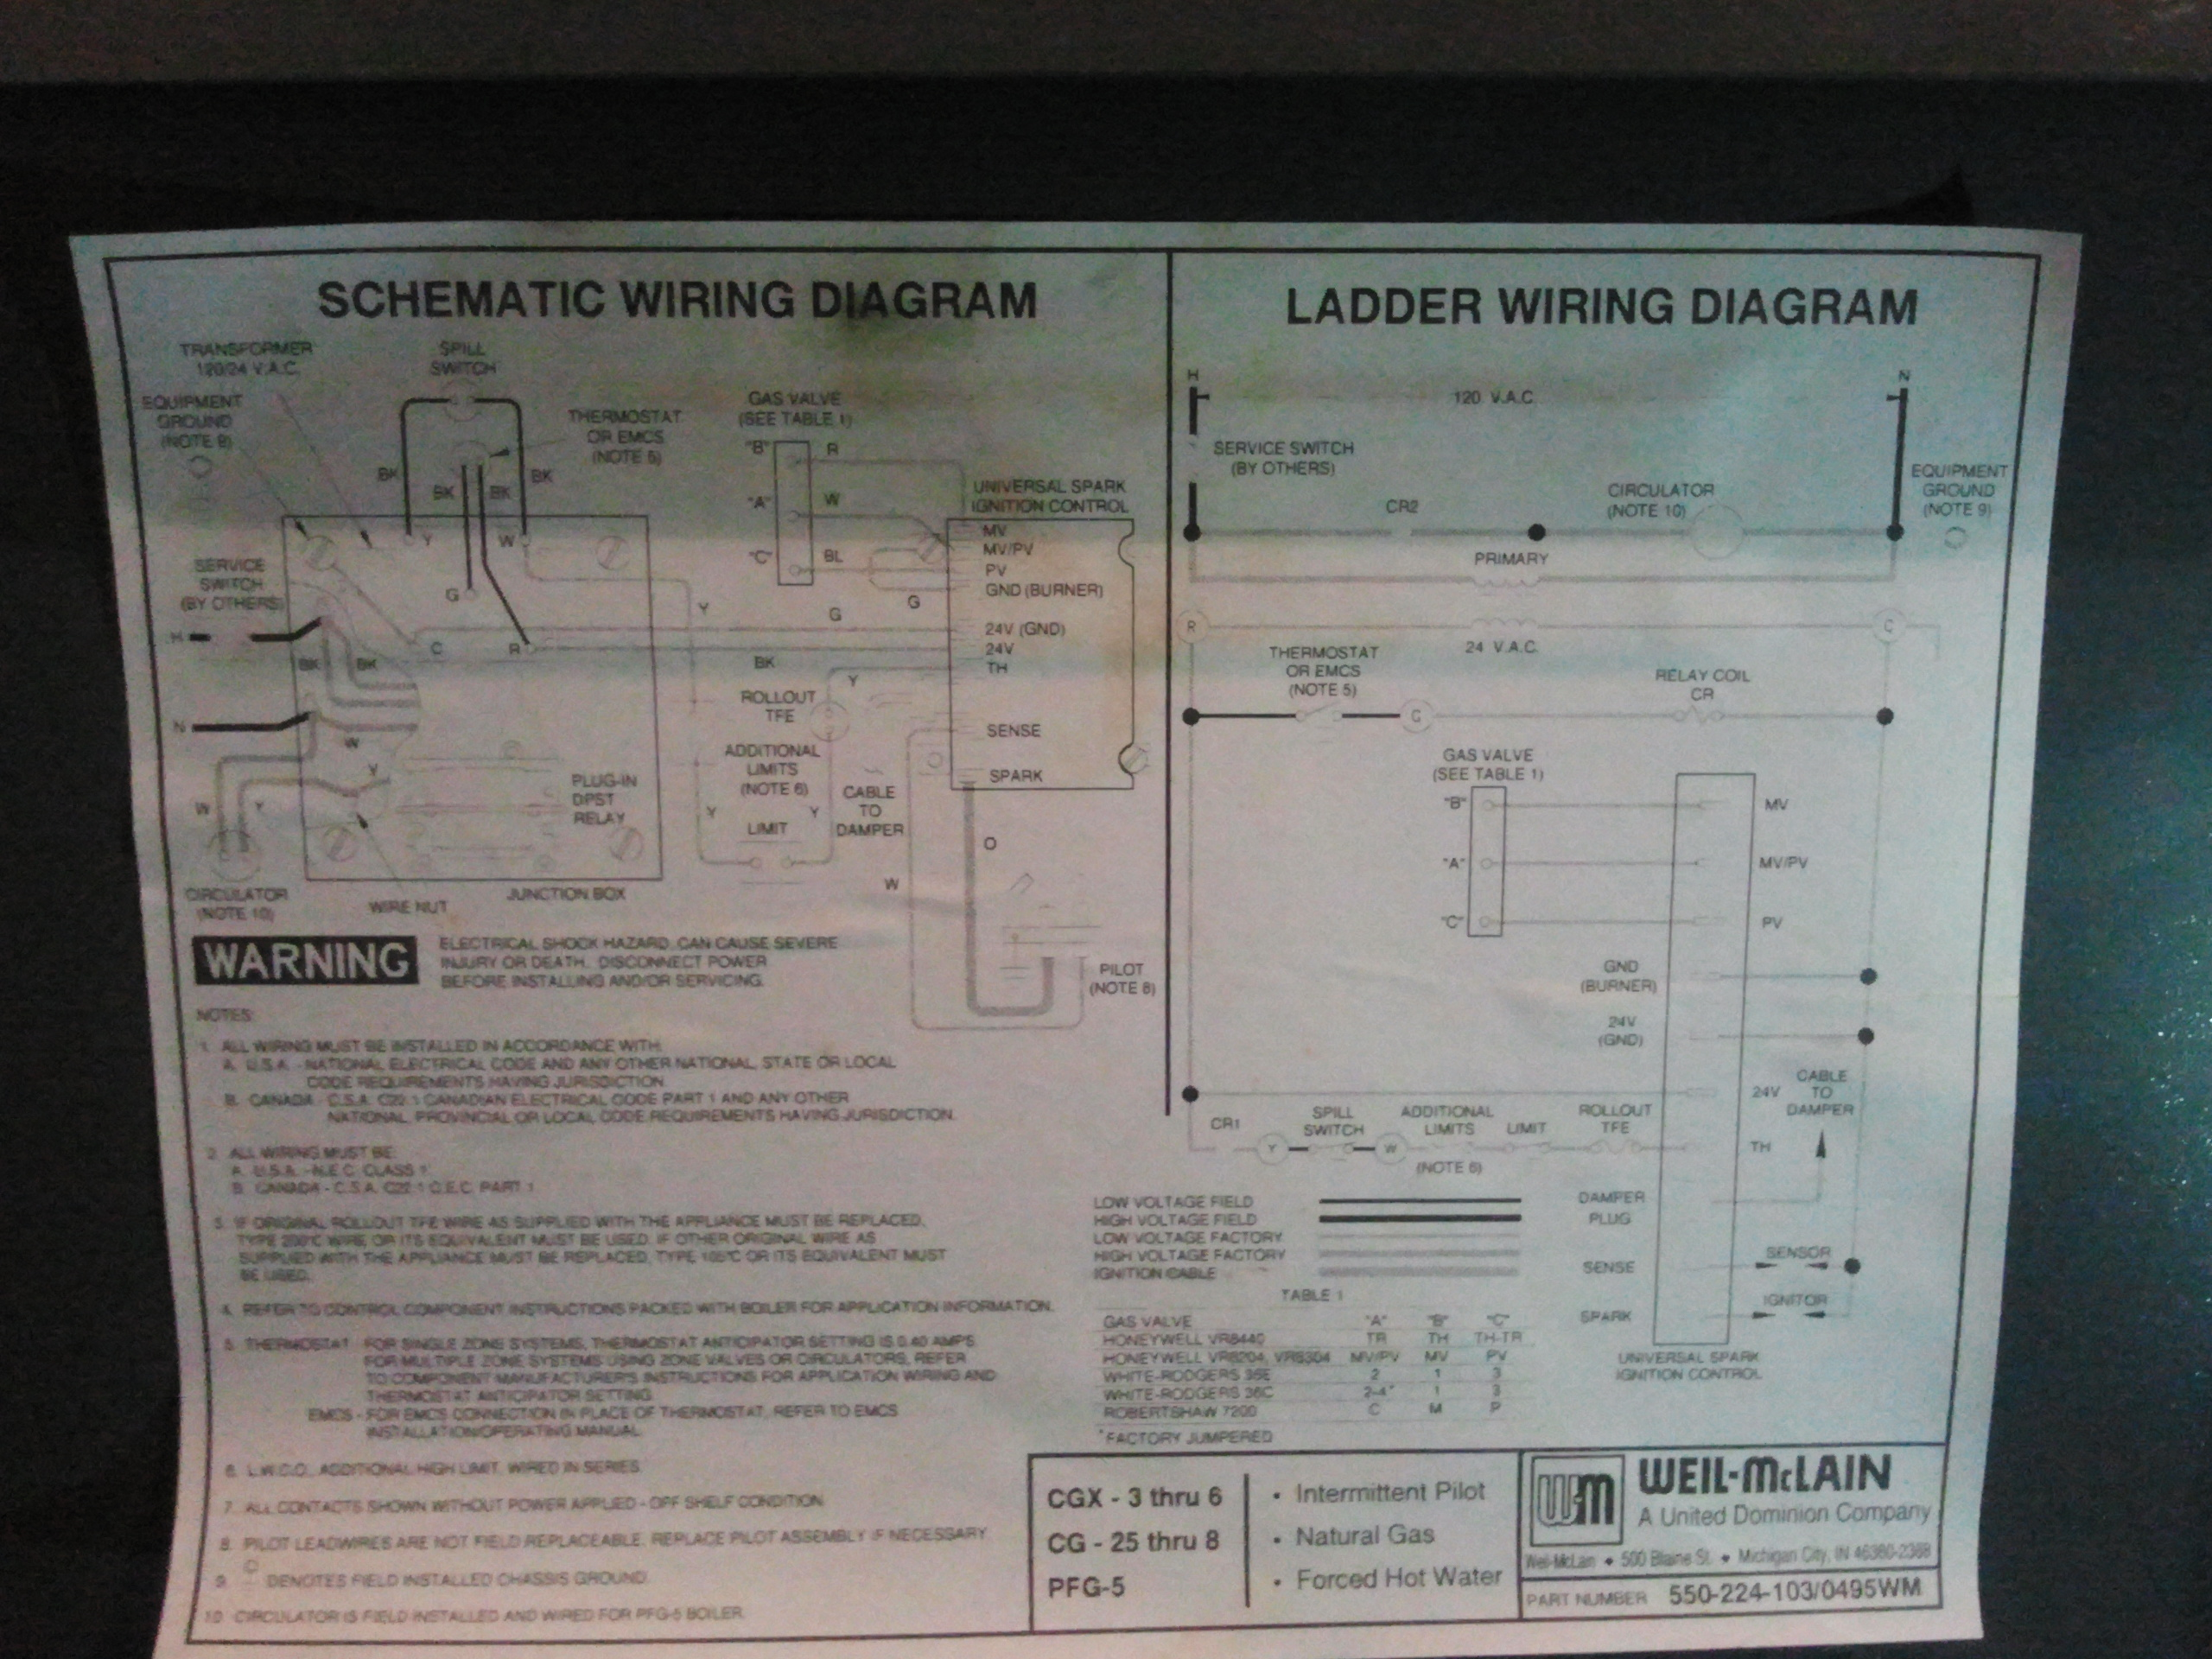 2013 01 11_234321_2013 01 09_10.12.39 i have a weil mclain gas furnace that i installed in 1991 a automatic vent damper wiring diagram at bakdesigns.co